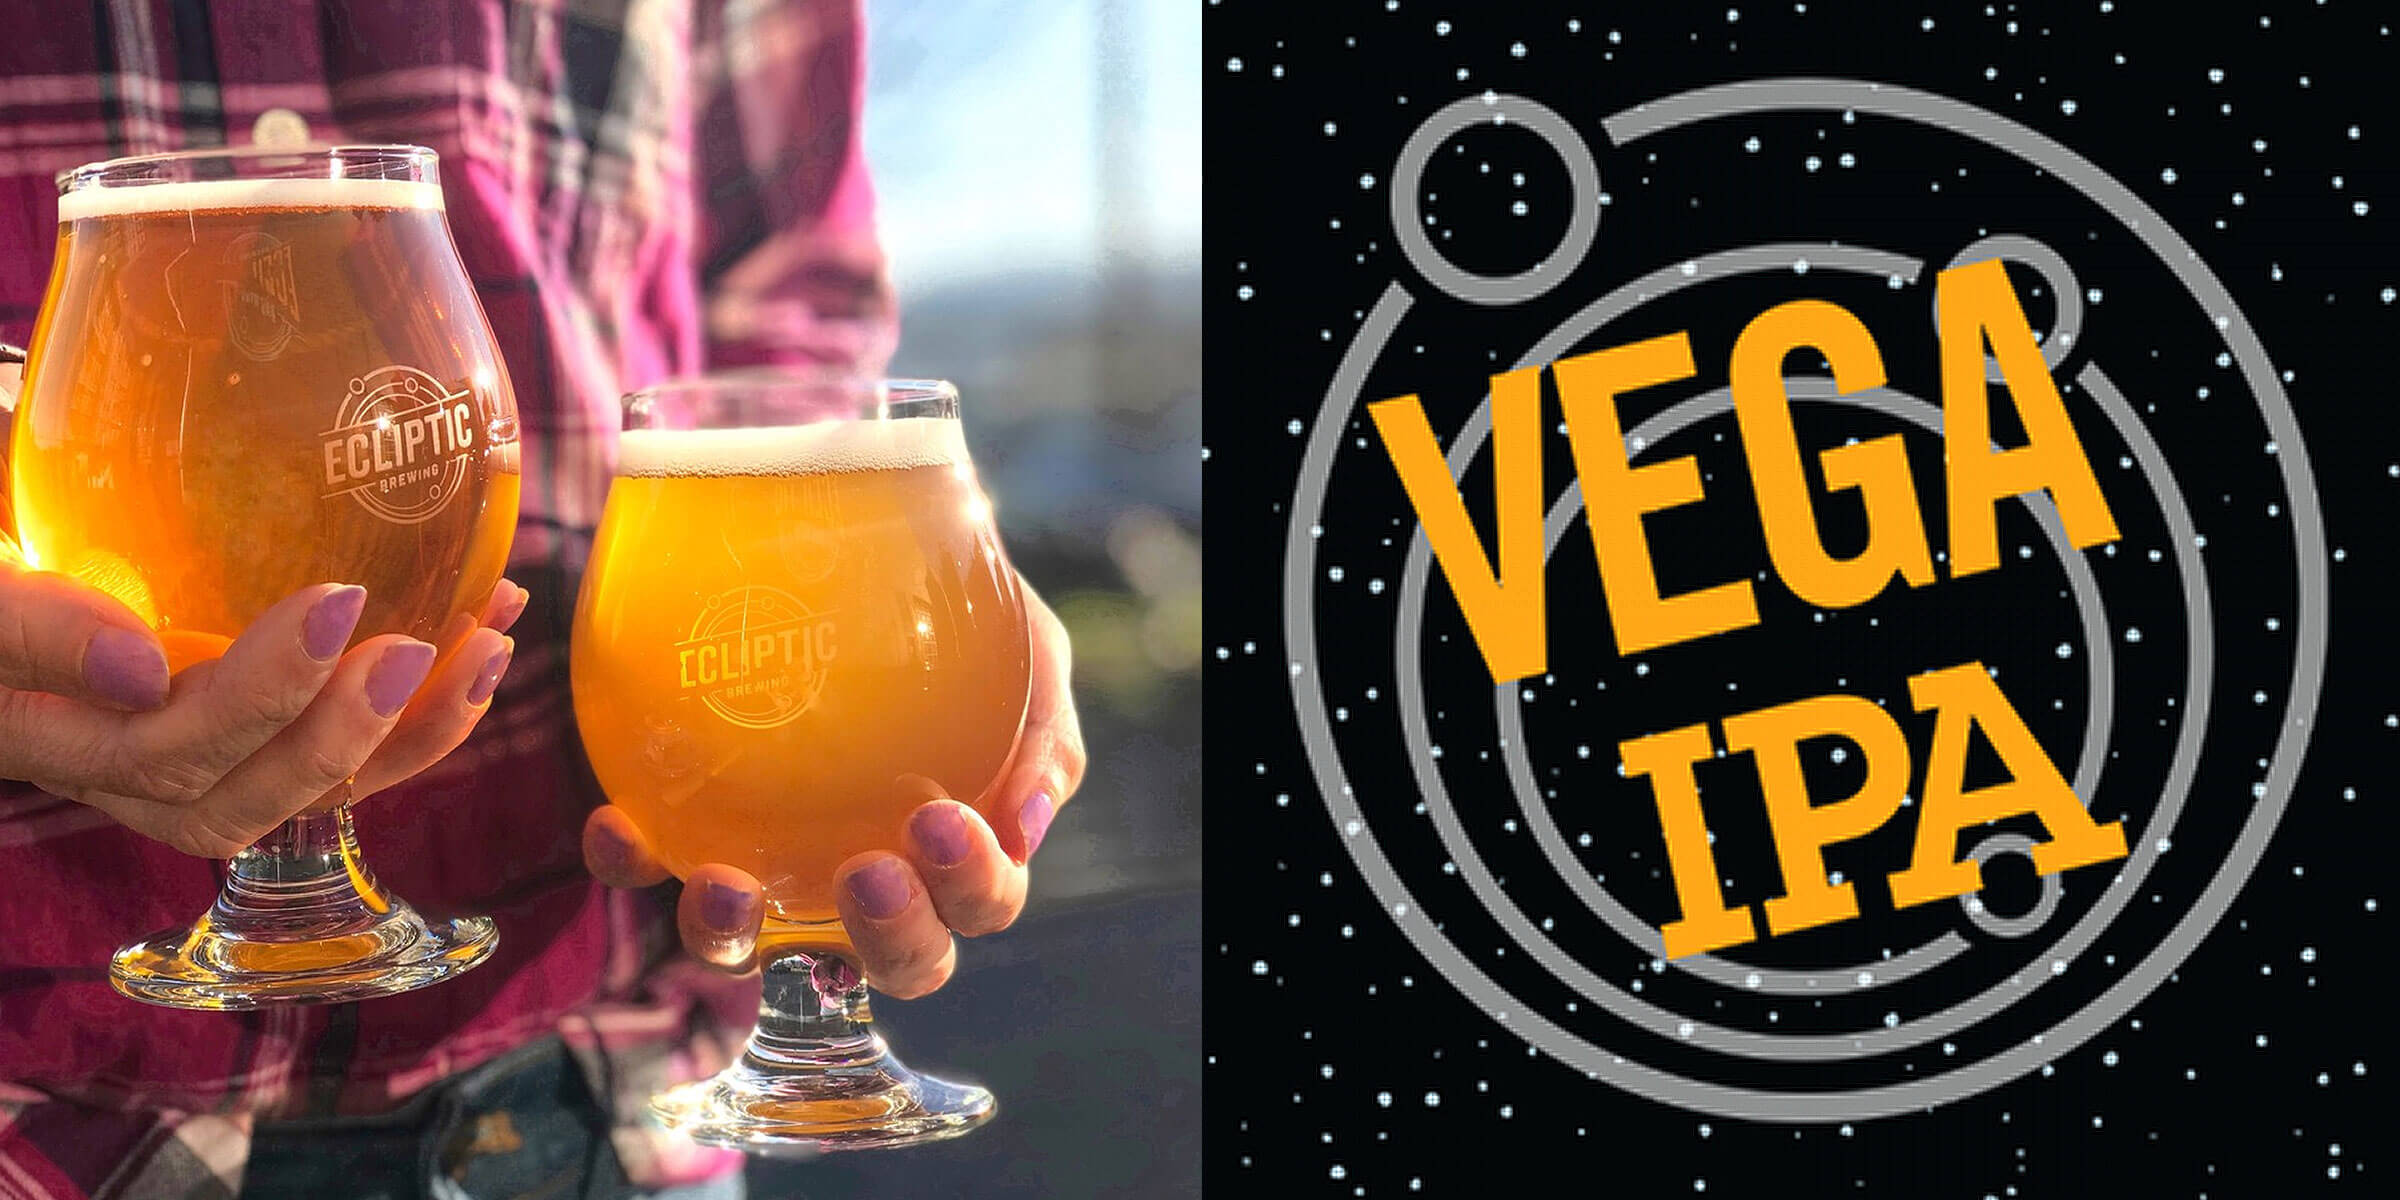 Ecliptic Brewing announced the launch of its Vega IPA Series in 16 oz. cans. Originally a draft only option, the brewery sees growth for the brand.